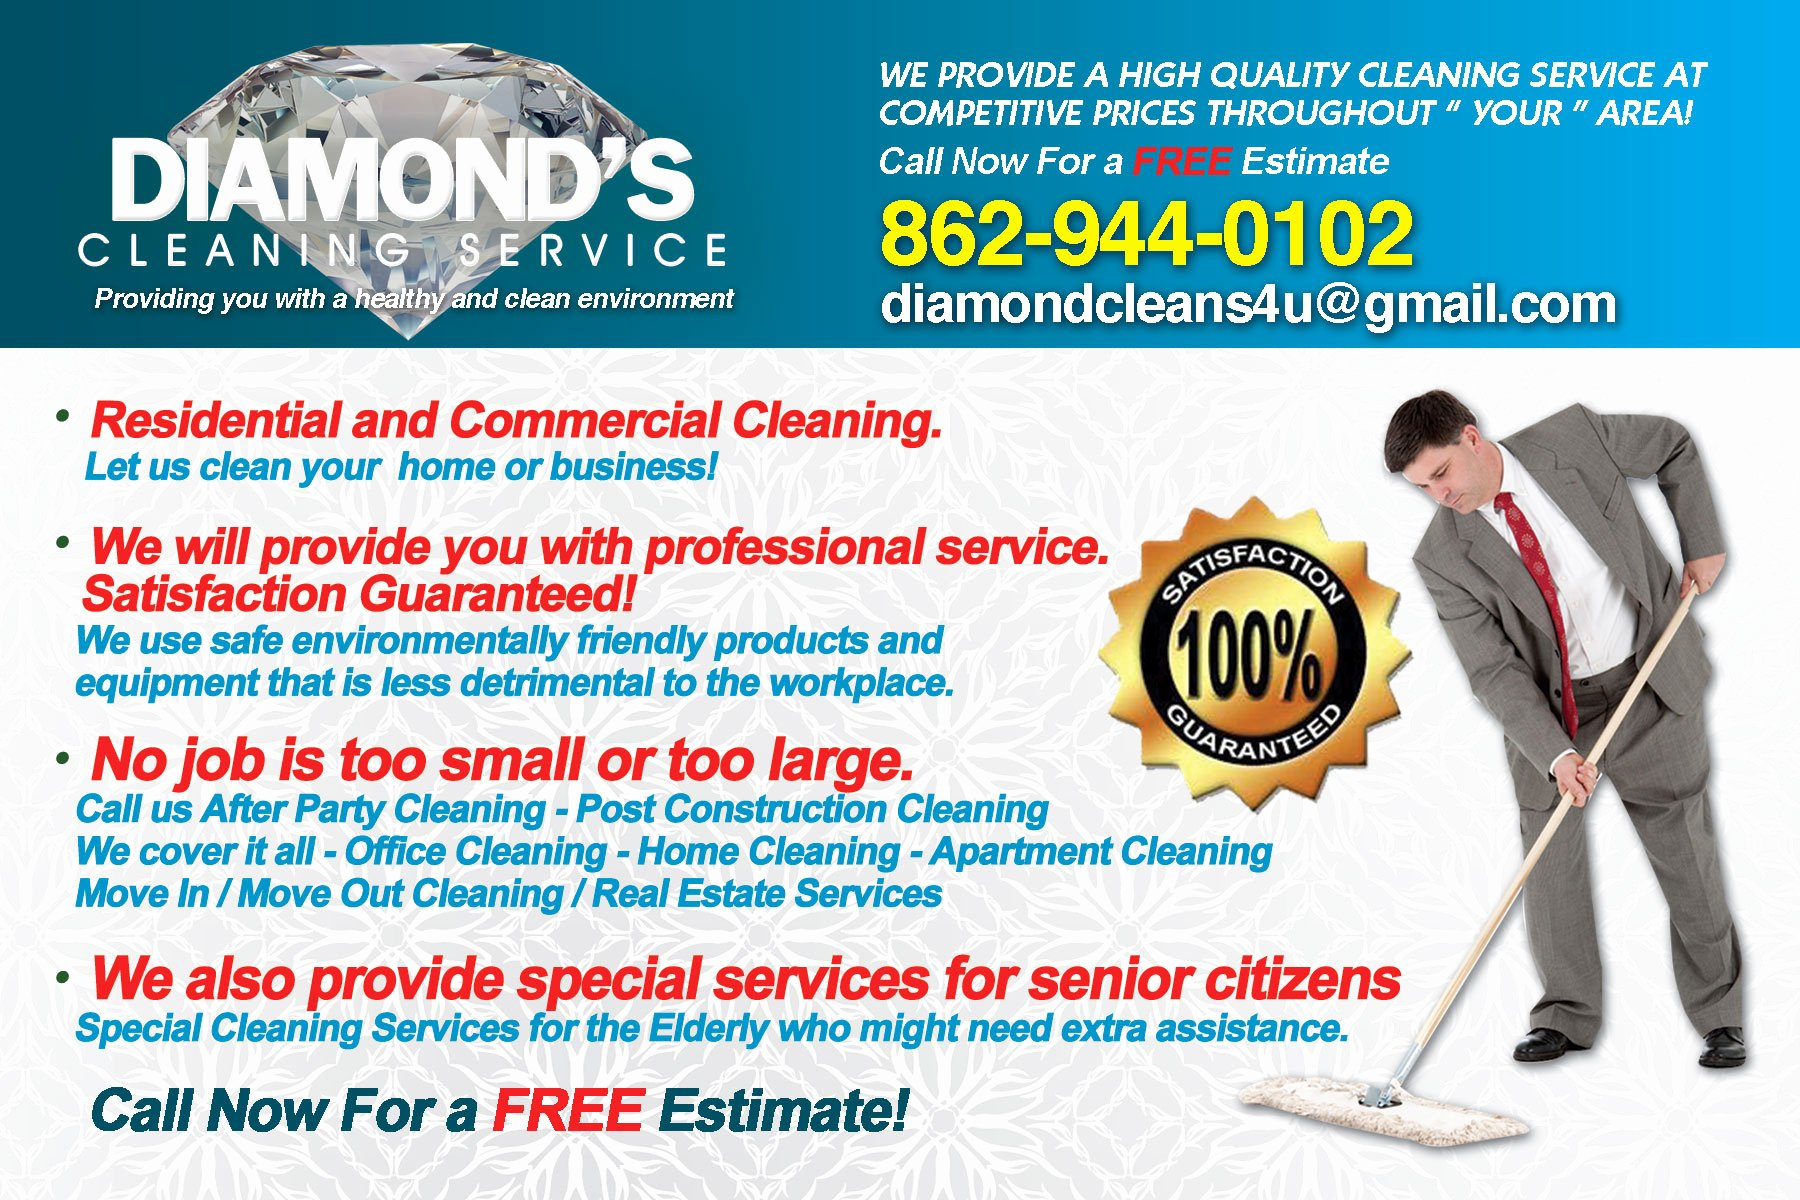 Flyer for Cleaning Service Inspirational Home Design and Remodeling Show 2013 Promote Your Booth Affordably Elite Flyers Blog